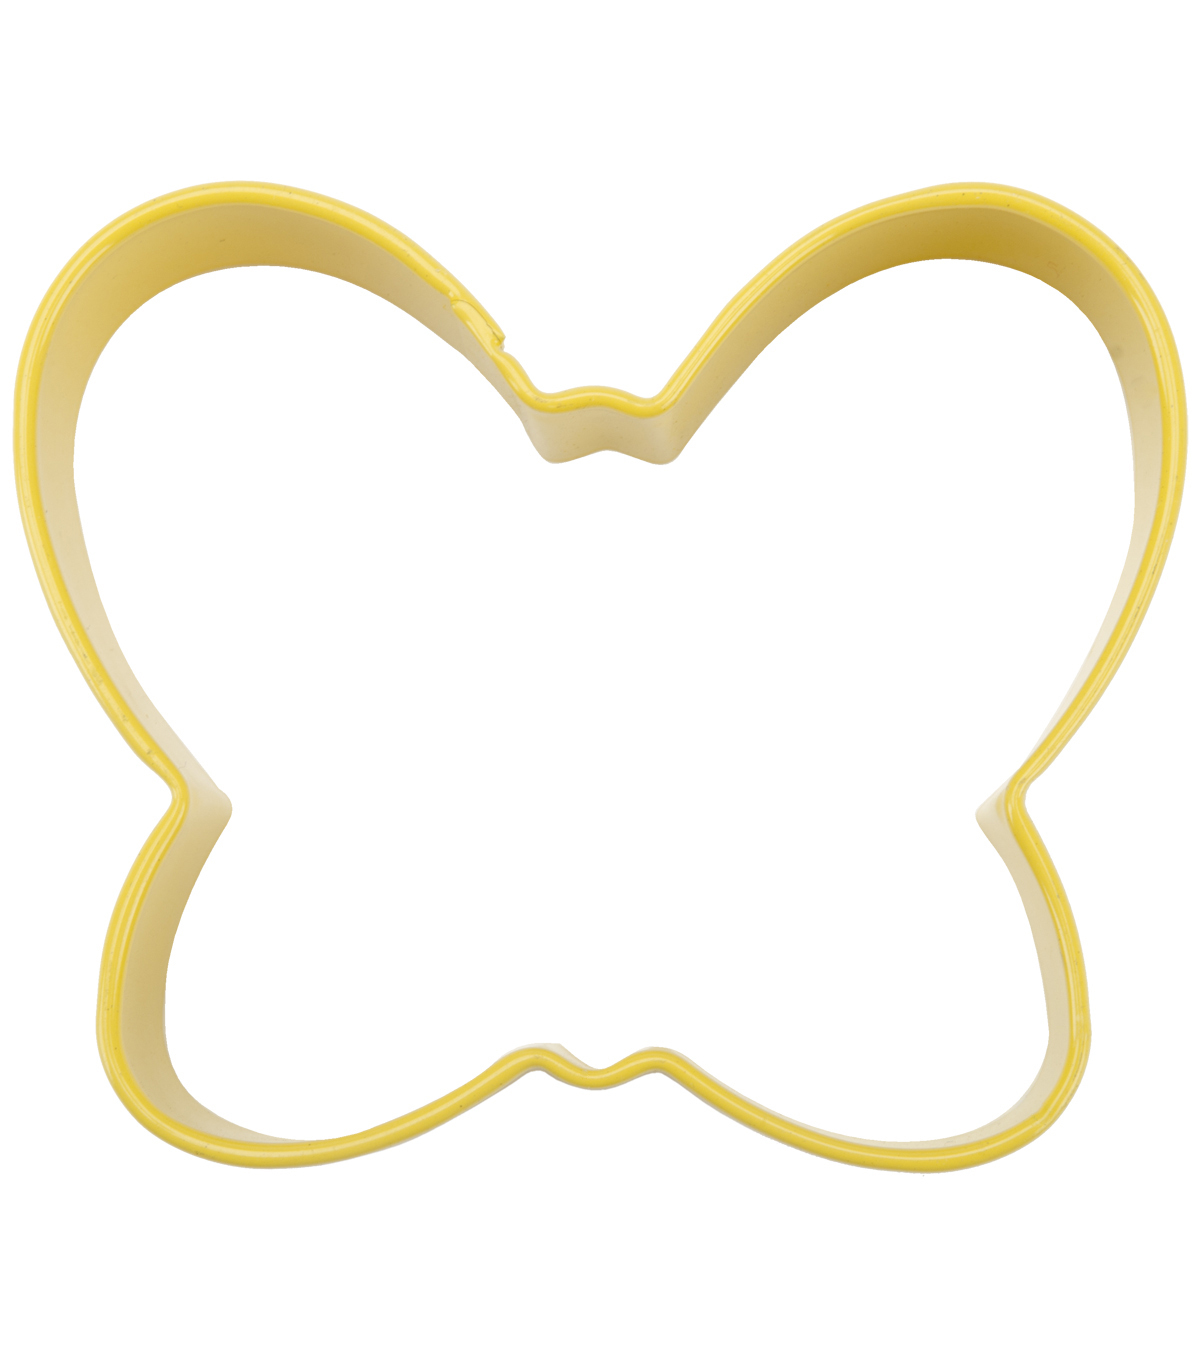 Y Bfly Cookie Cutter